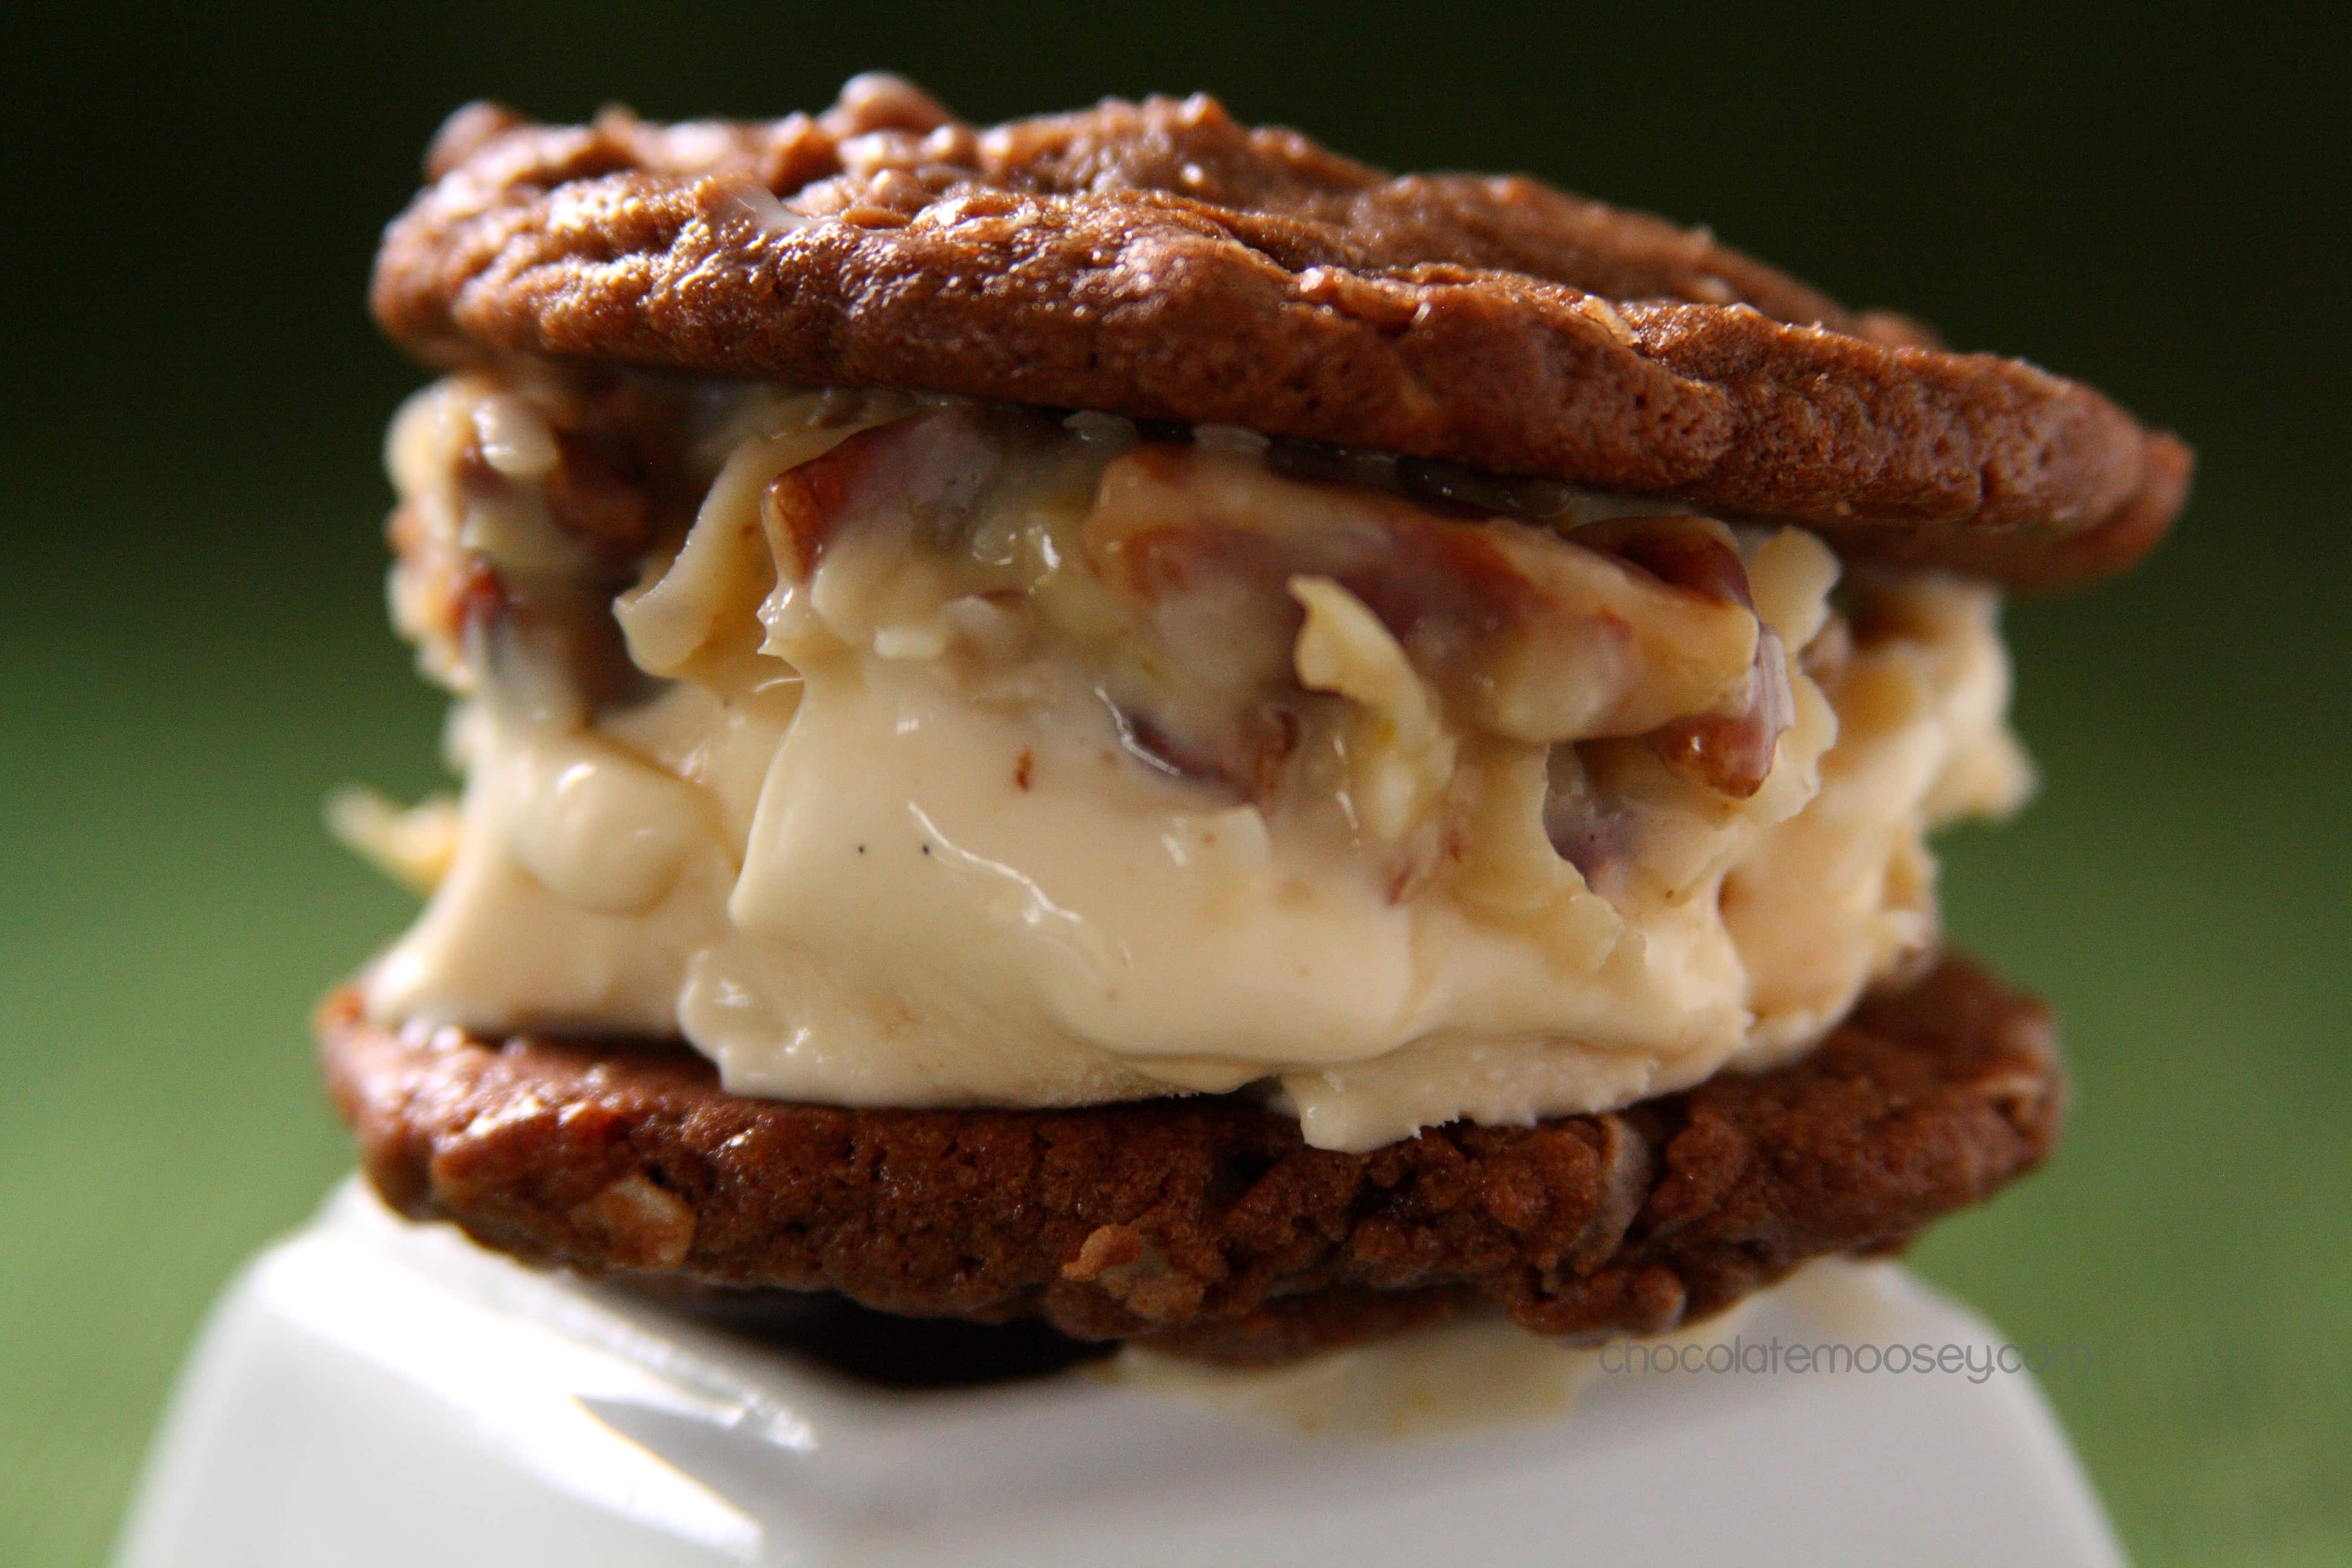 German Chocolate Ice Cream Sandwich Cookies from www.chocolatemoosey.com